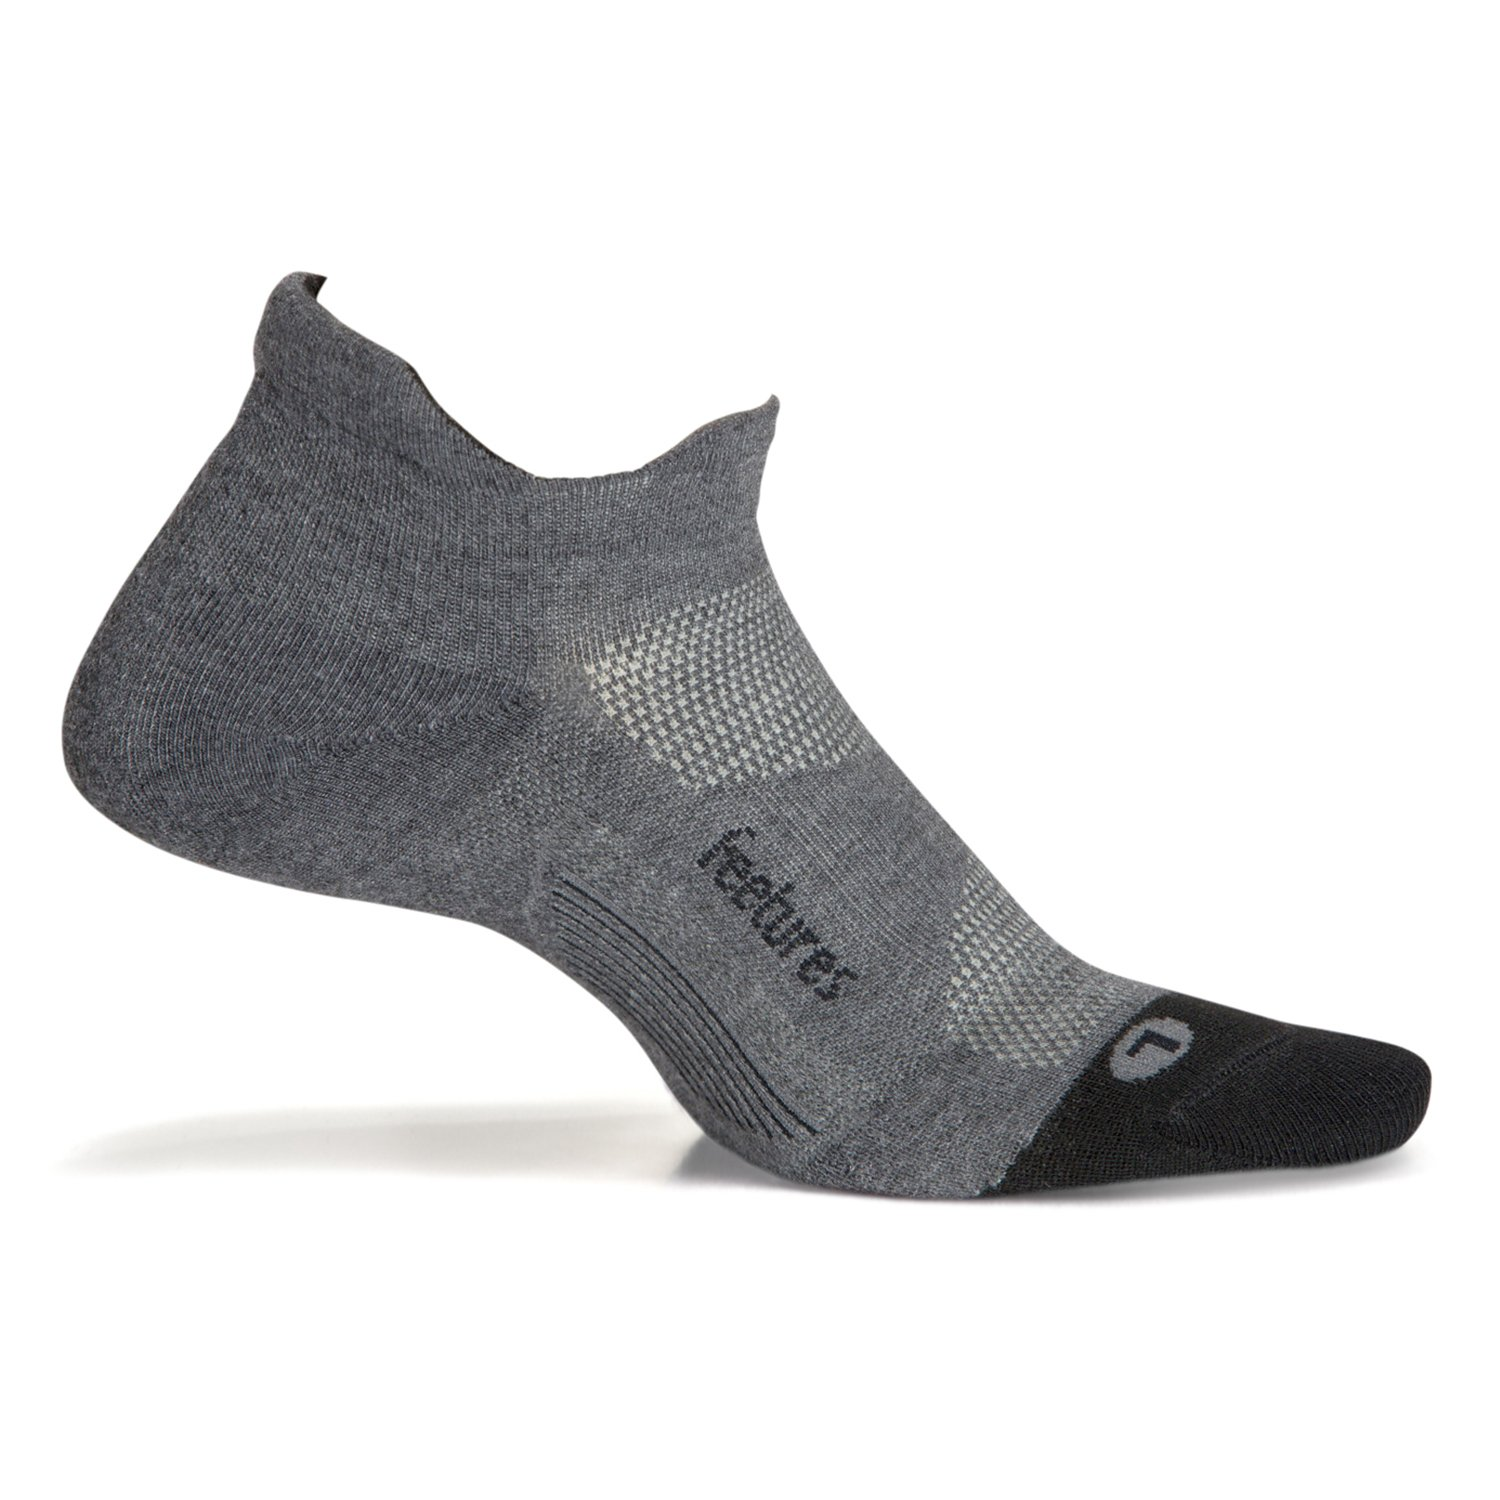 Feetures Elite Max Cushion No Show Tab Athletic Running Socks for Men and Women - Gray - Size Large